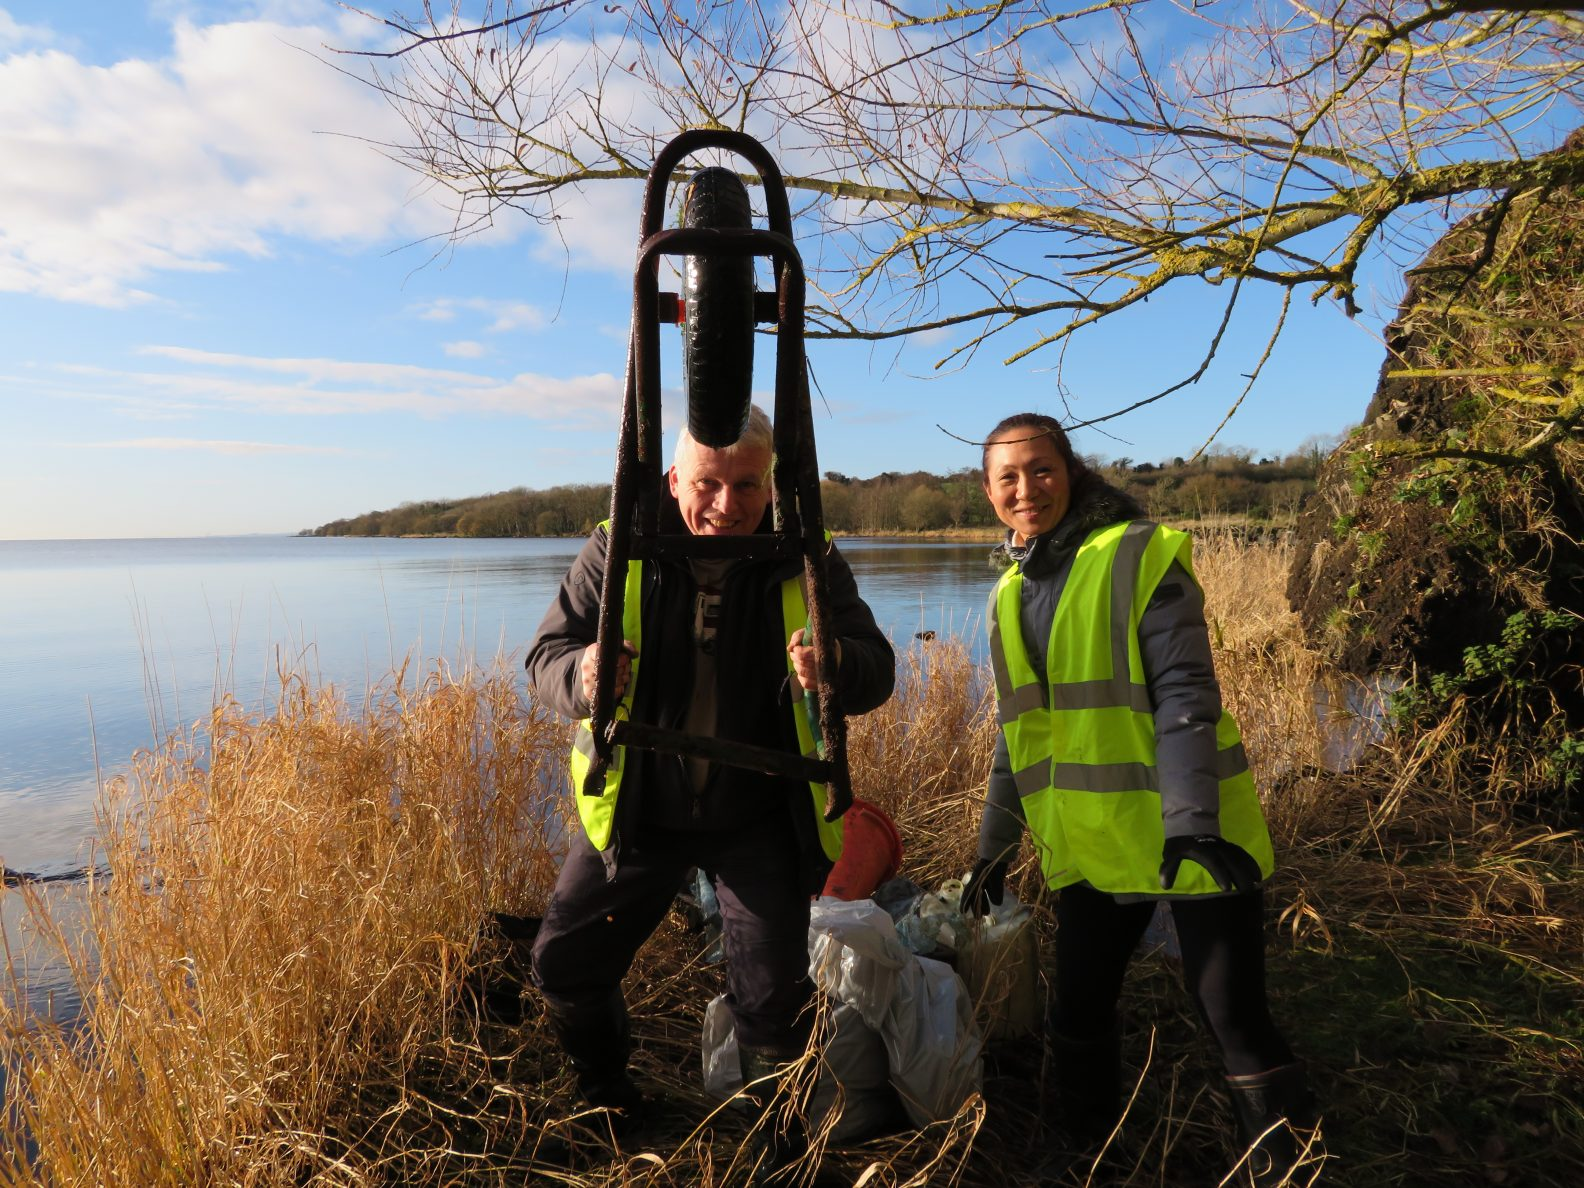 LOUGH SHORE PROBLEMS WITH PLASTIC NOT JUST AT CHRISTMAS